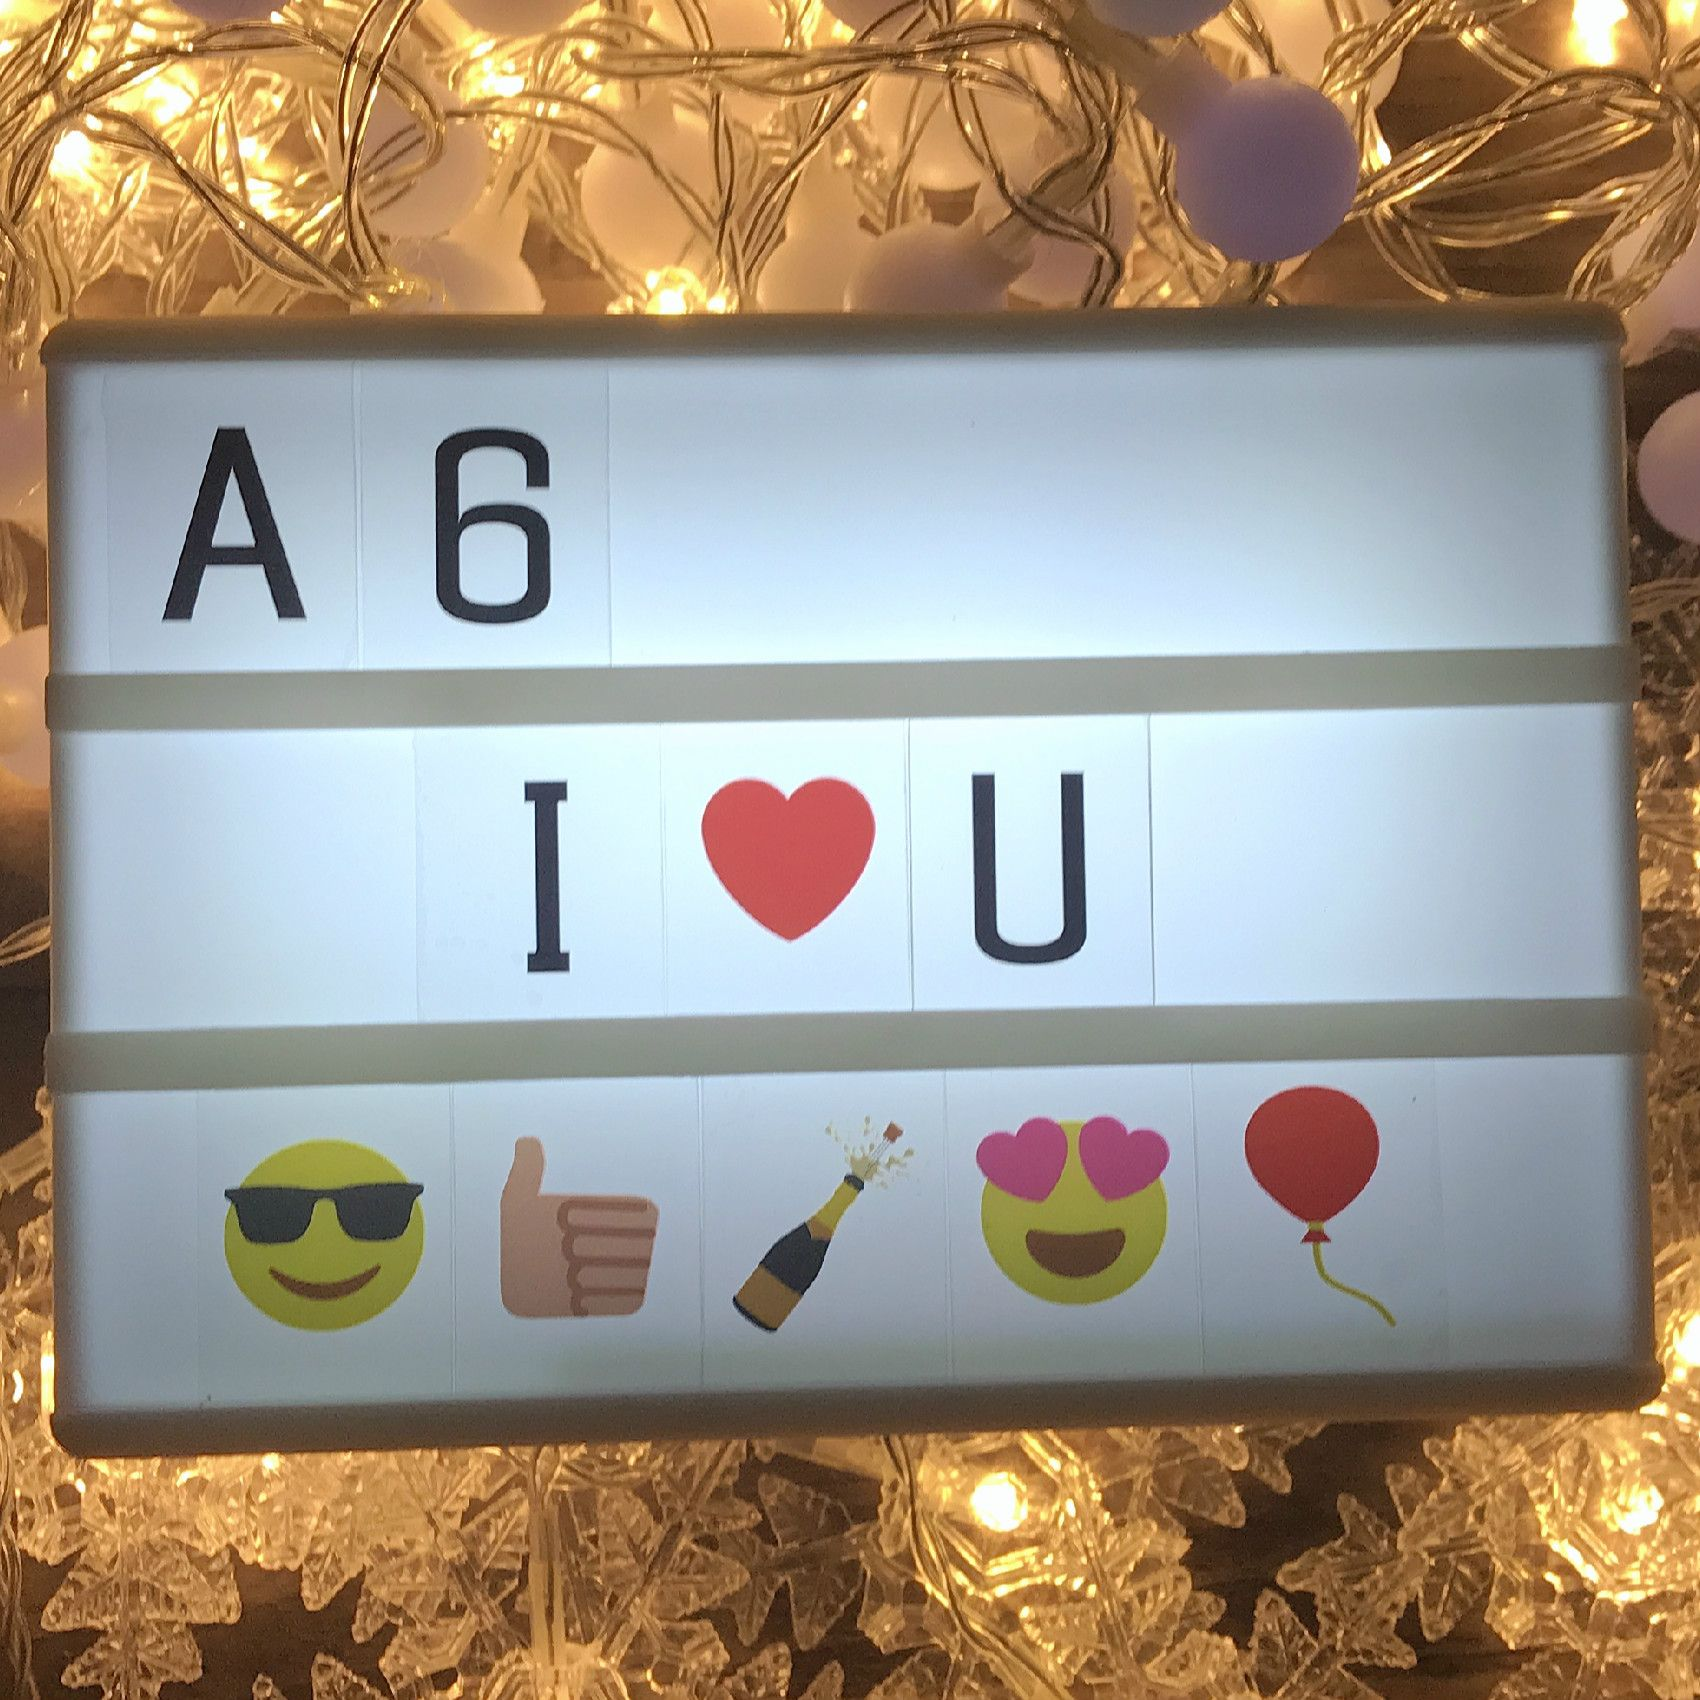 DIY LED Lightbox LED Night Light Box Modern Table Desk Cinematic Lamp A3/A4/A5/A6 Size Letters Number Battery USB Decor IY303206